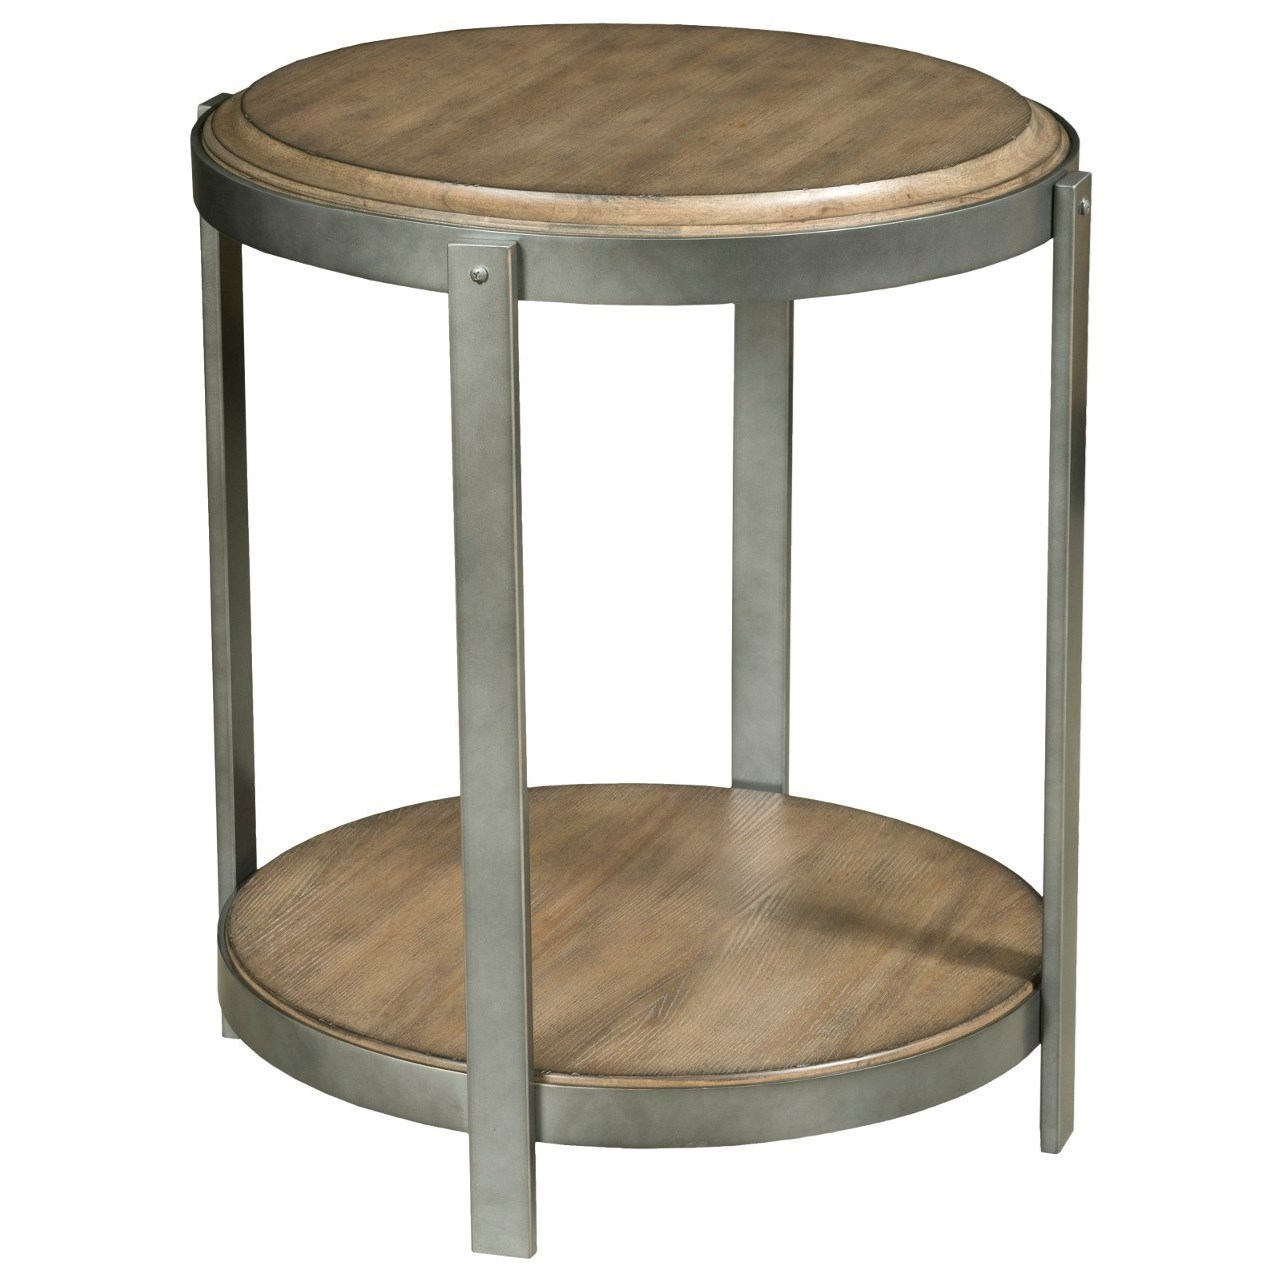 delivery estimates northeast factory direct cleveland eastlake products american drew color evoke round metal accent table large grey lamp college dorm accessories ceramic stool